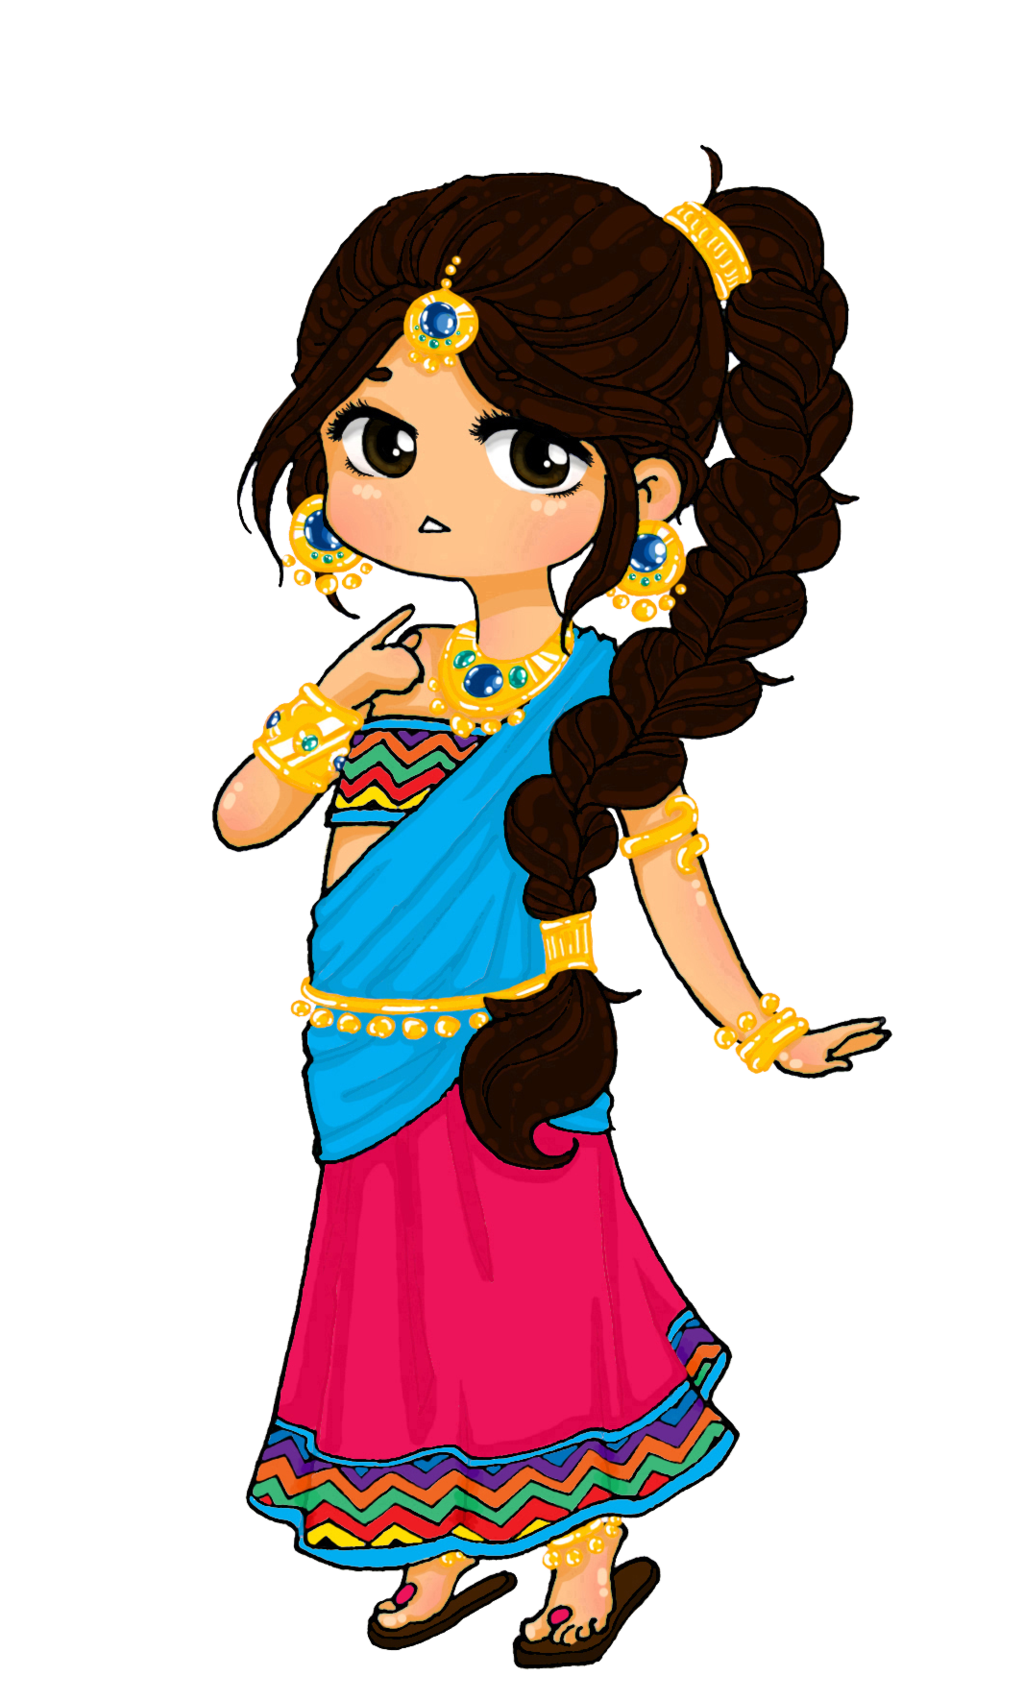 Indians clipart cool. Indian princess drawing chibi